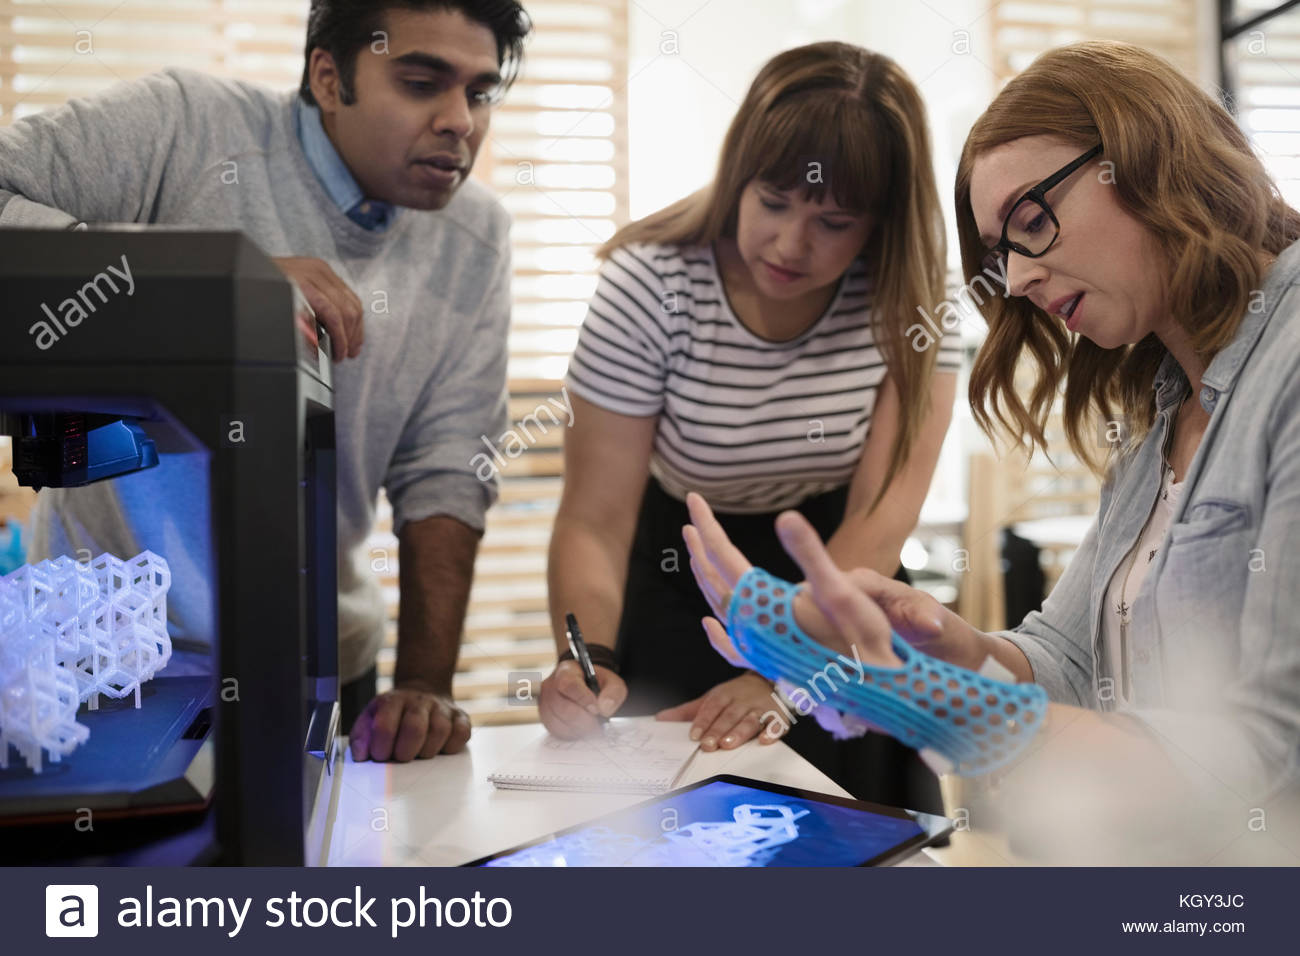 Designers examining glove prototype at 3D printer in office - Stock Image